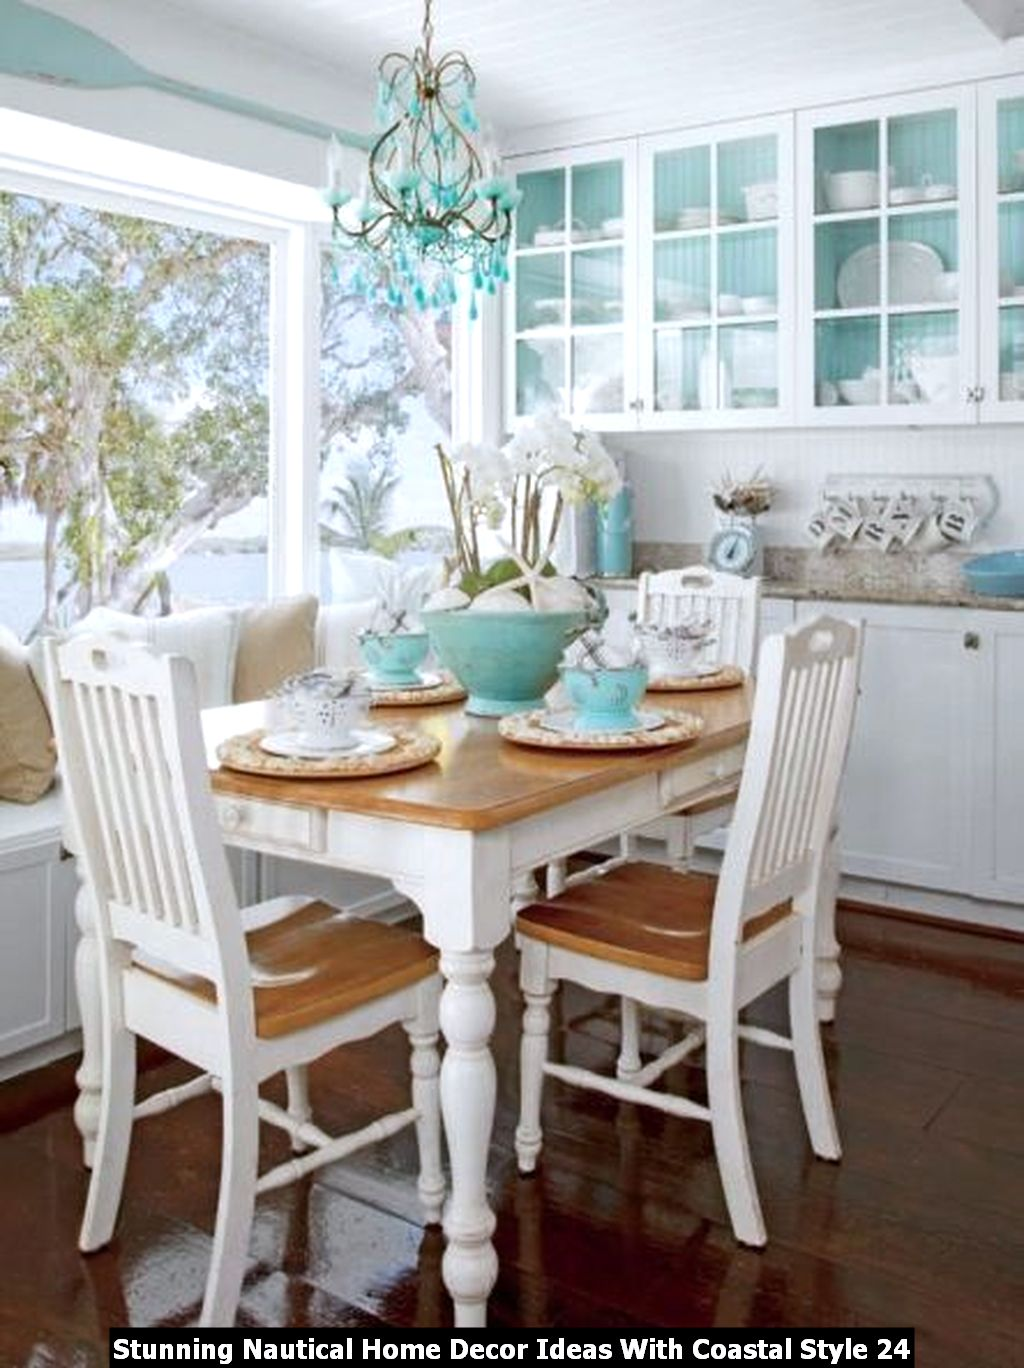 Stunning Nautical Home Decor Ideas With Coastal Style 24